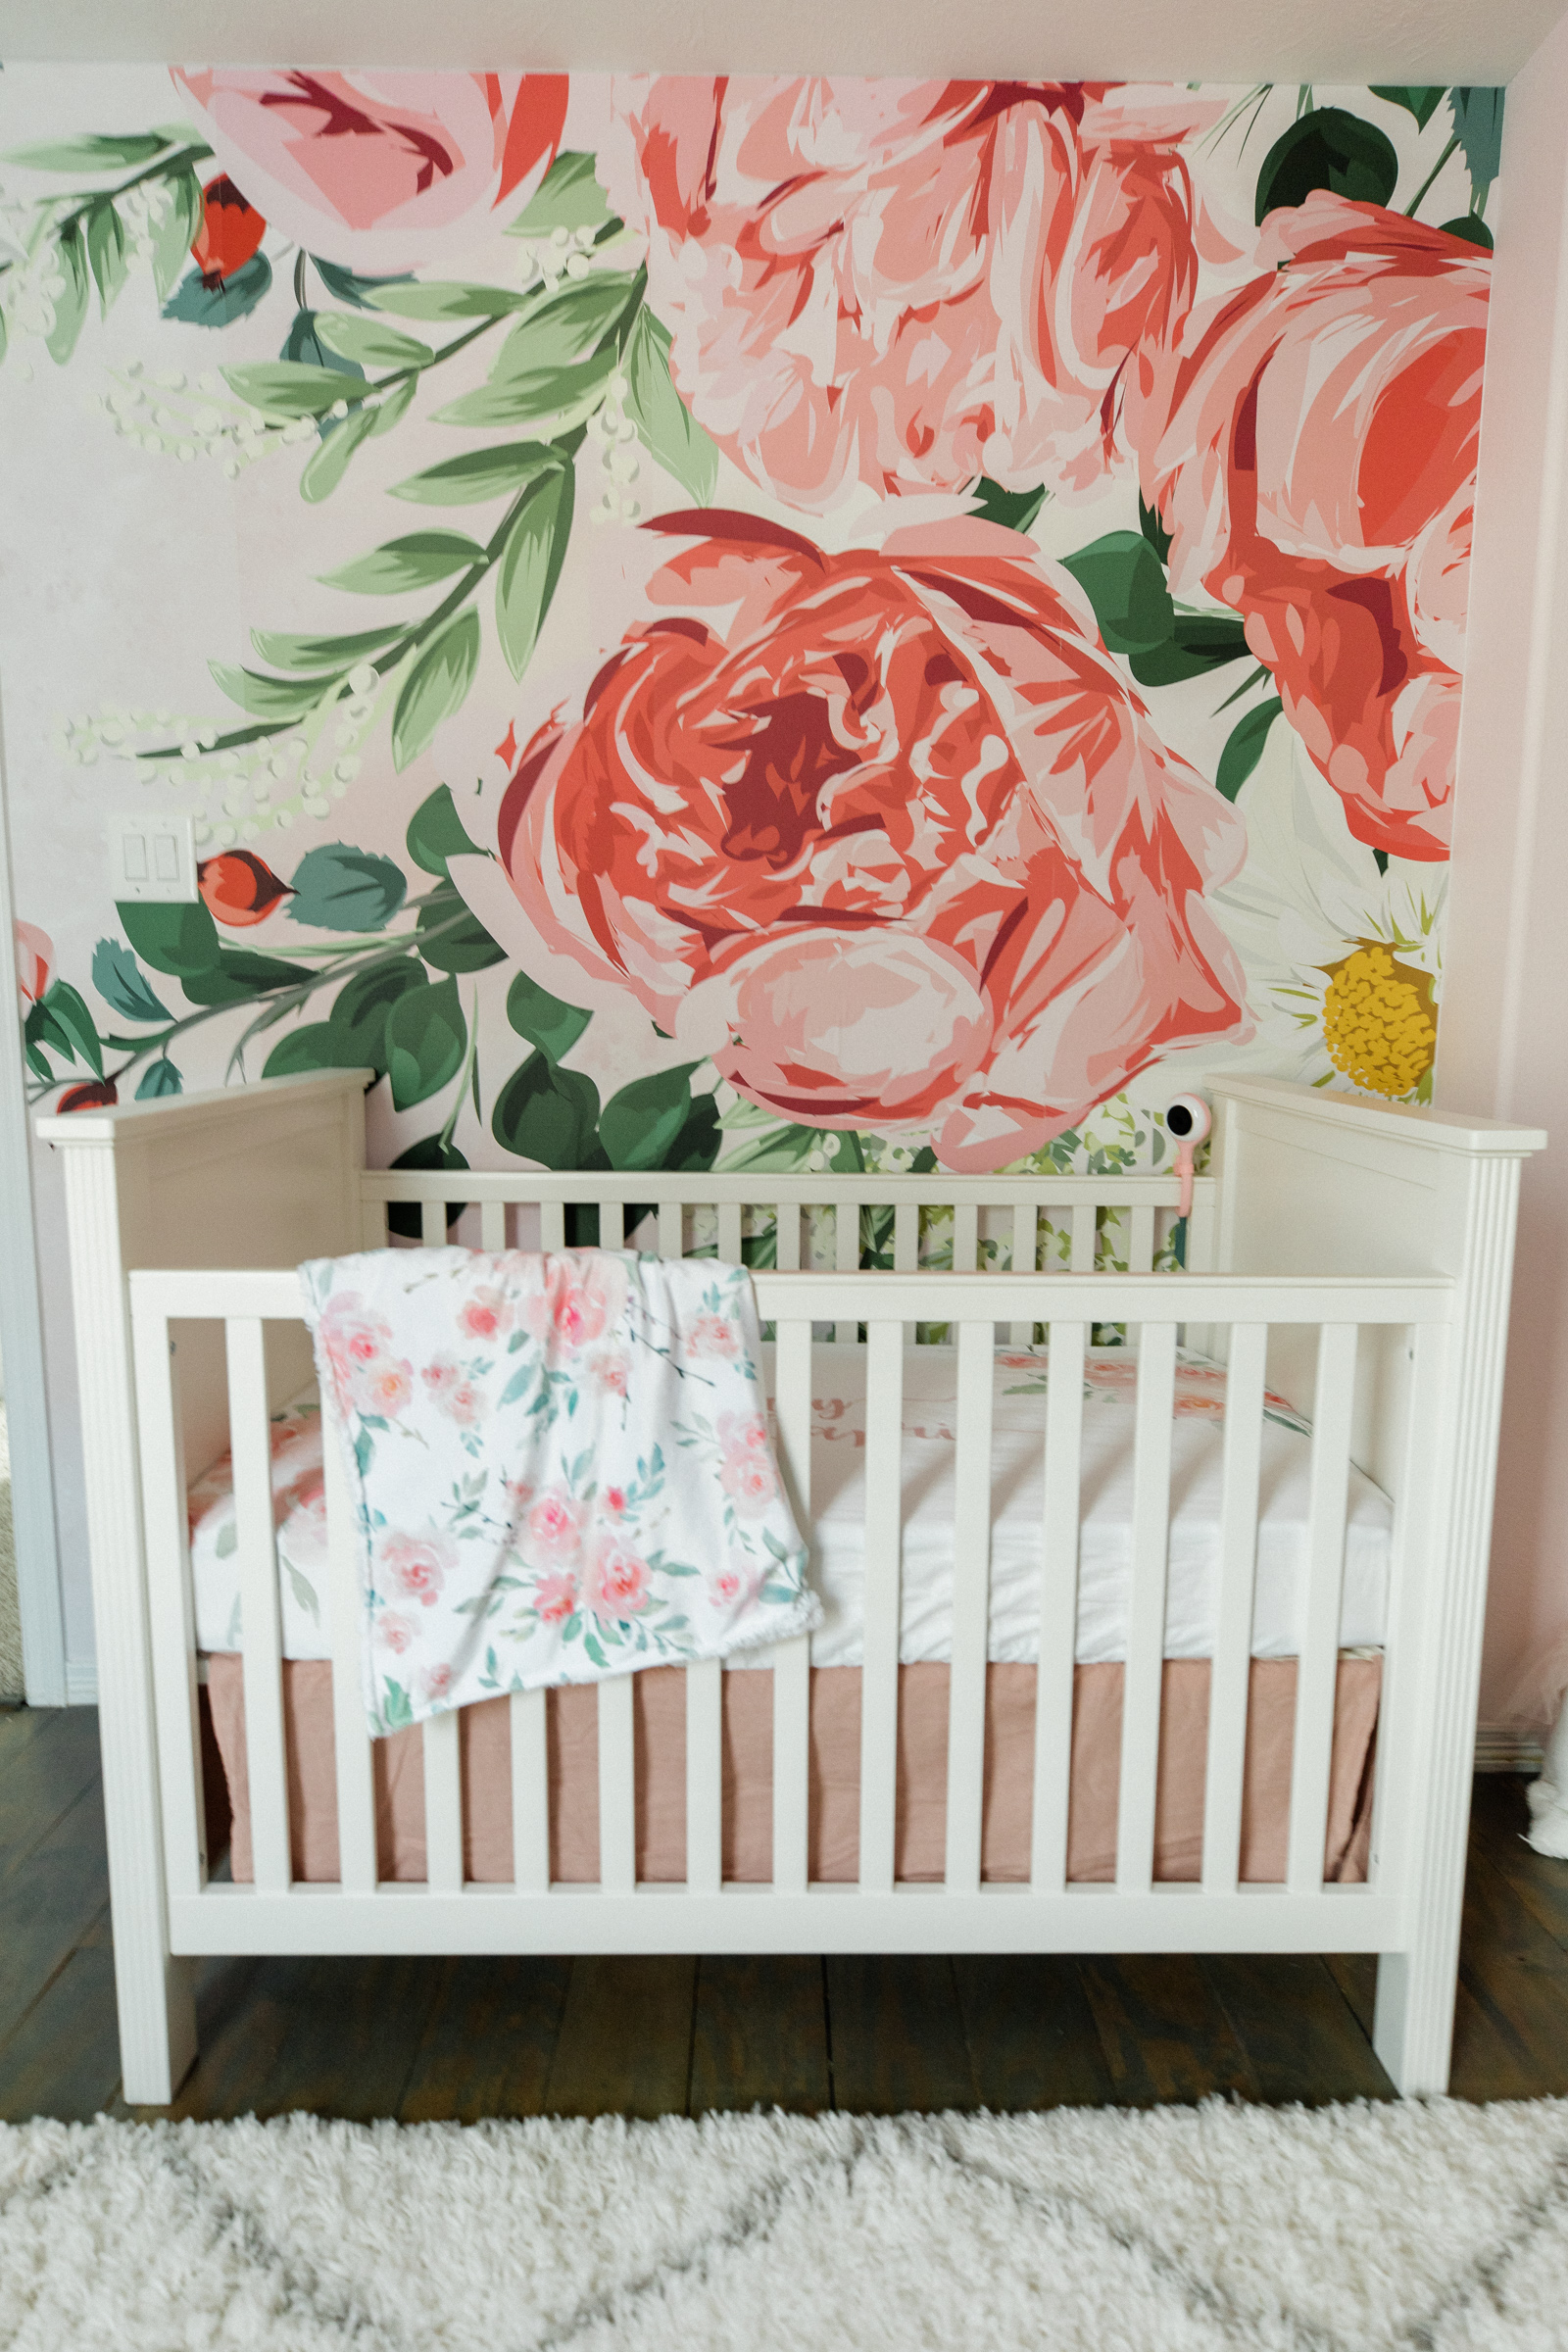 Houston lifestyle blogger Elly Brown shares the wallpaper mural in the baby girl nursery decor